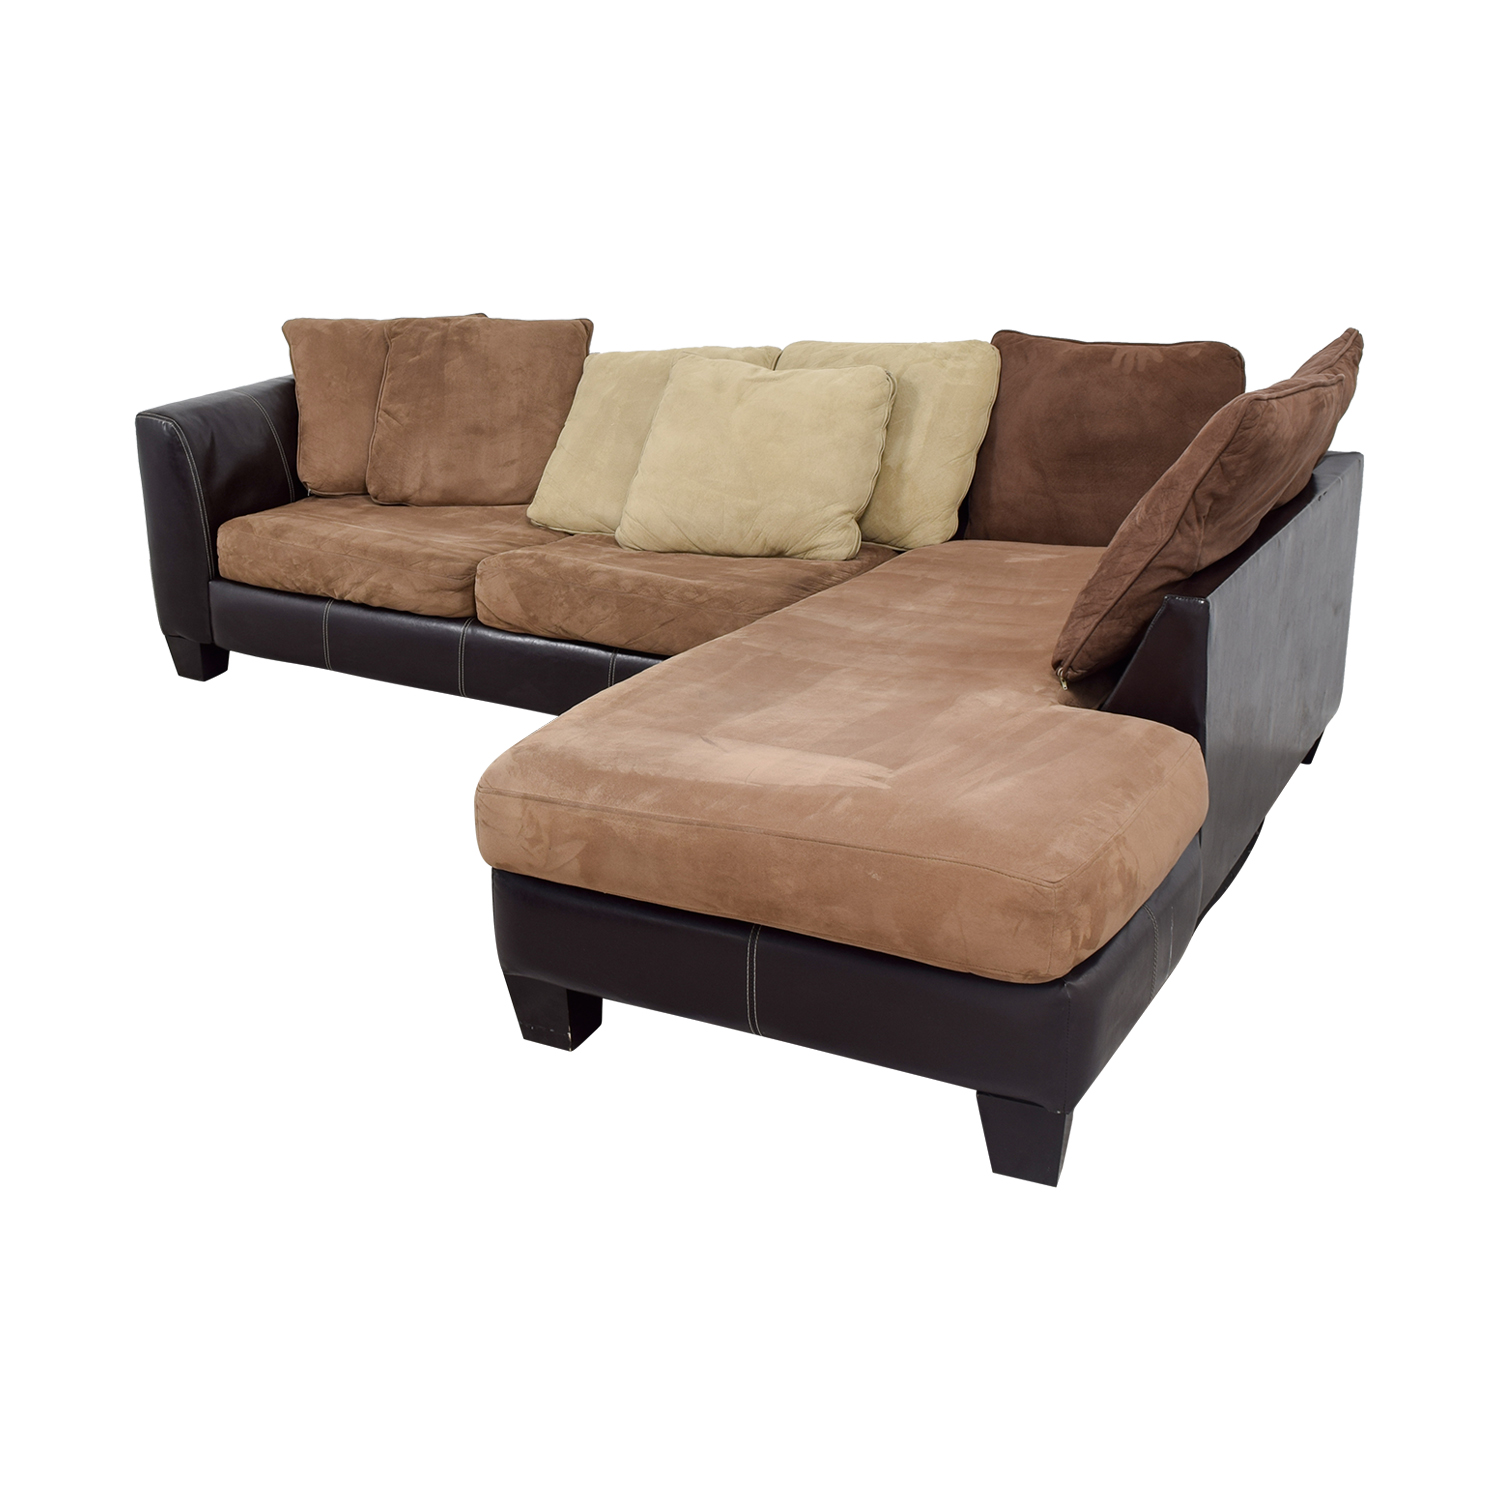 89 Off Albany Industries Albany Industries Brown Chaise